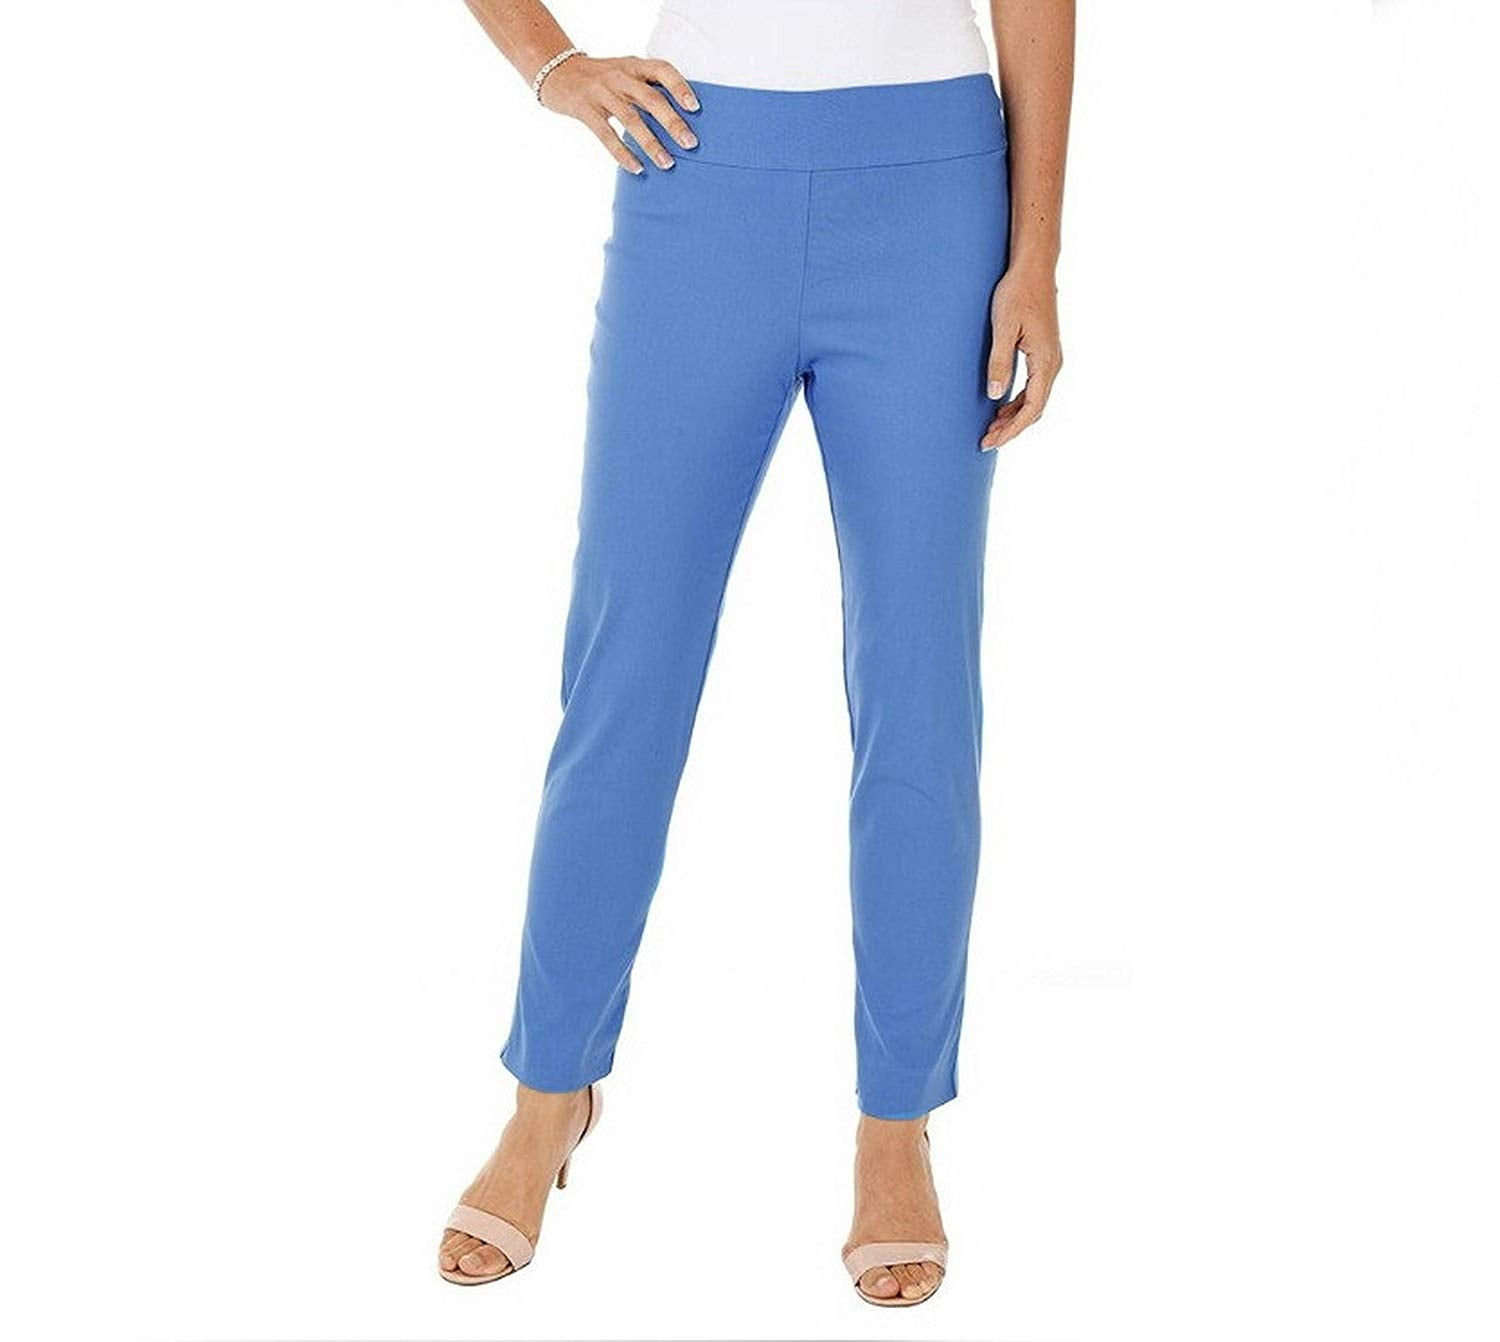 429245b4a53 Krazy Larry Womens Microfiber Long Skinny Dress Pants  blue prints